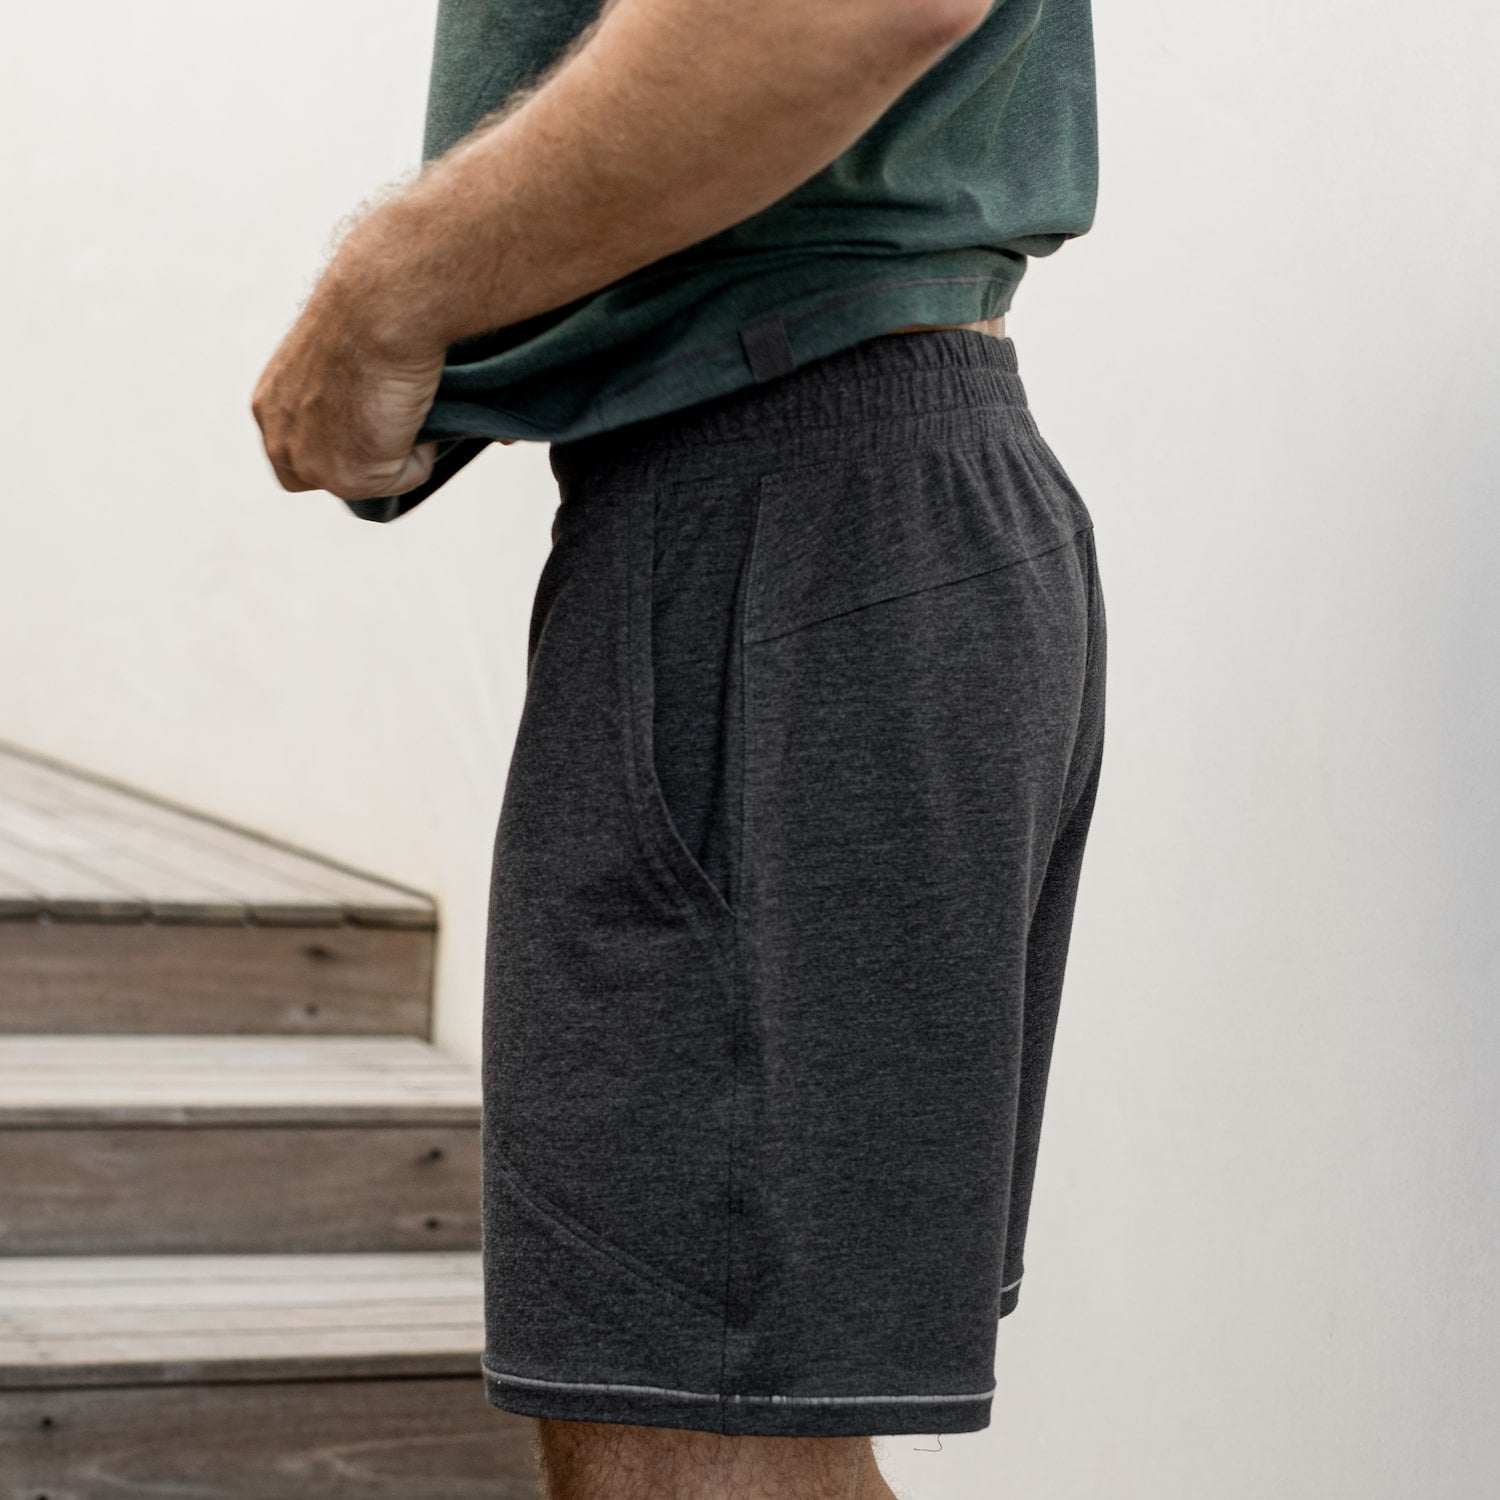 Lahgo Sleepwear Restore Short - #Charcoal